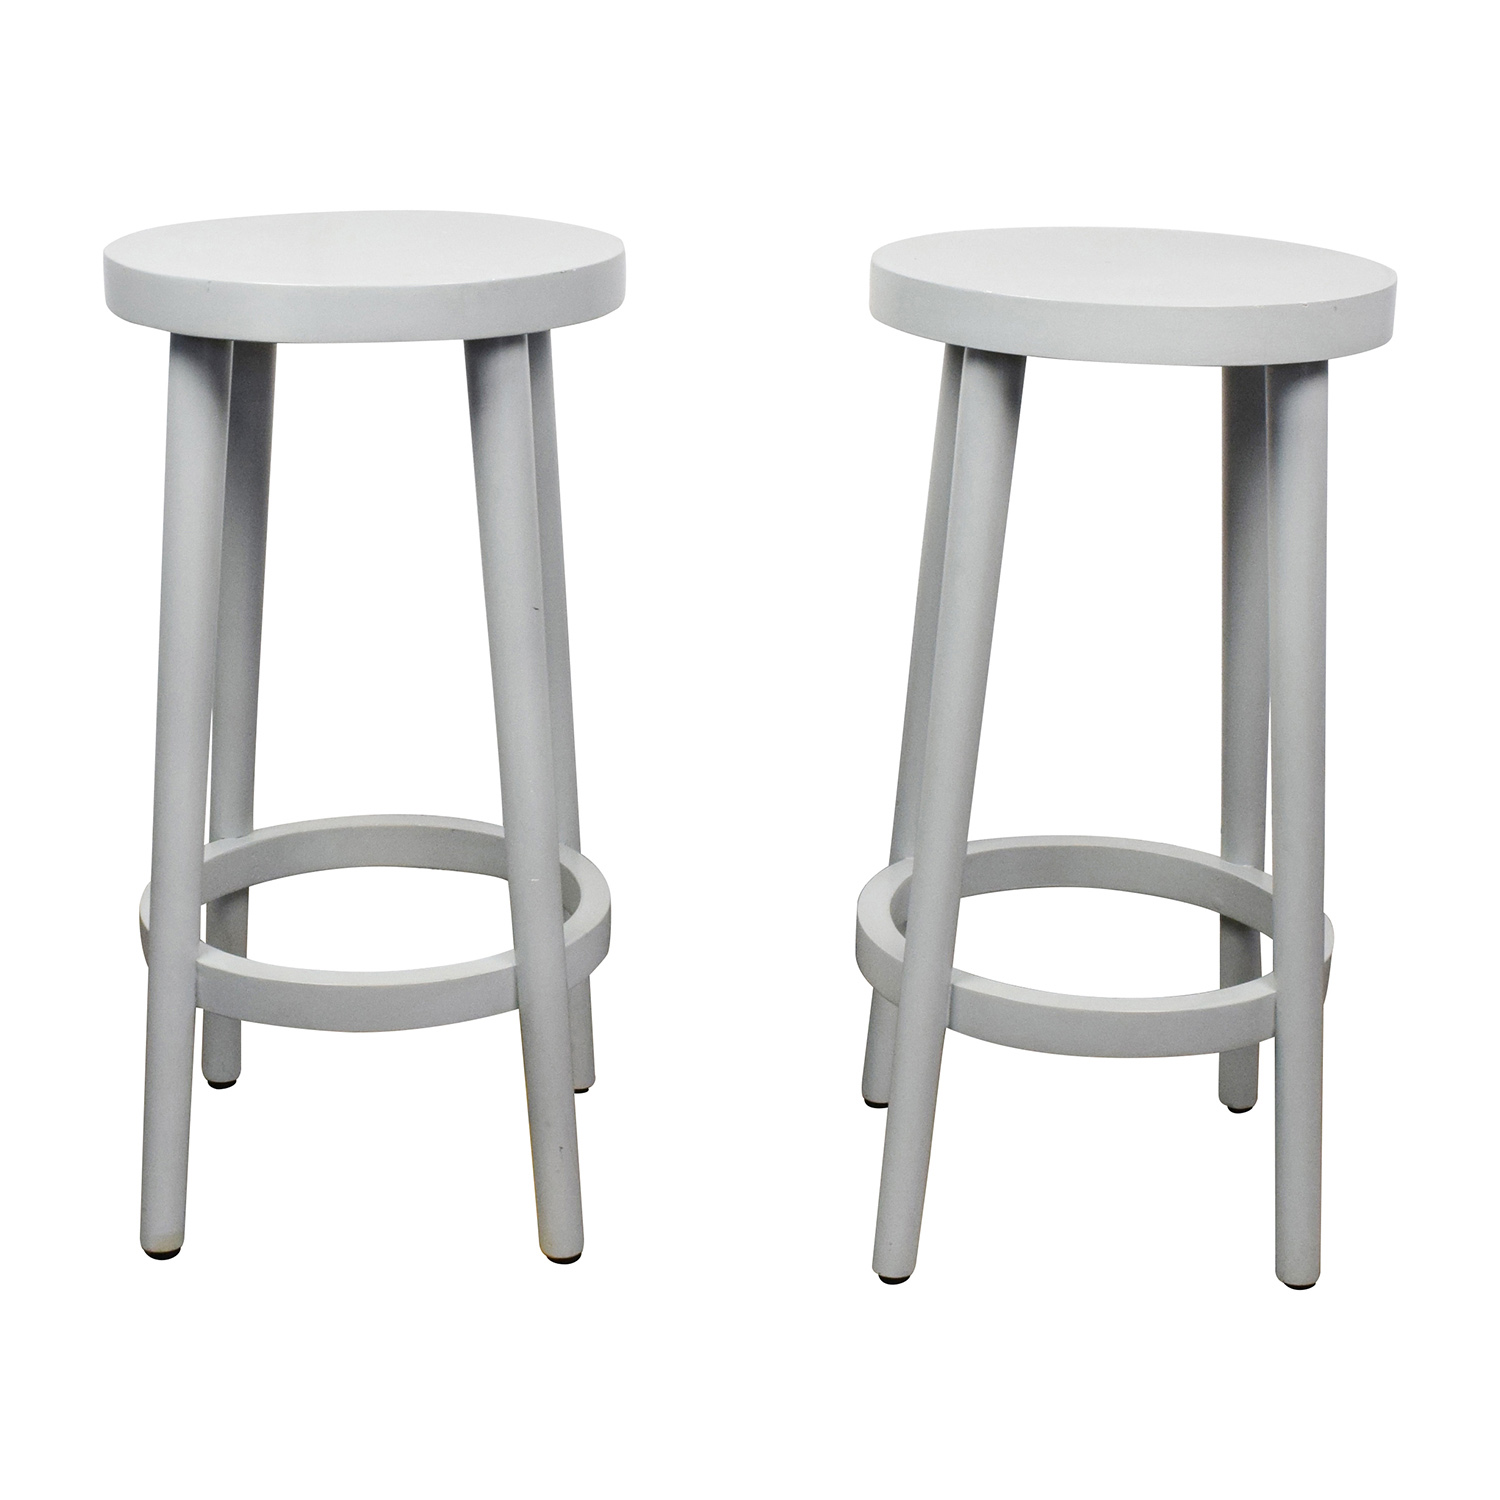 Surprising 55 Off West Elm West Elm Counter Bar Stools Chairs Bralicious Painted Fabric Chair Ideas Braliciousco